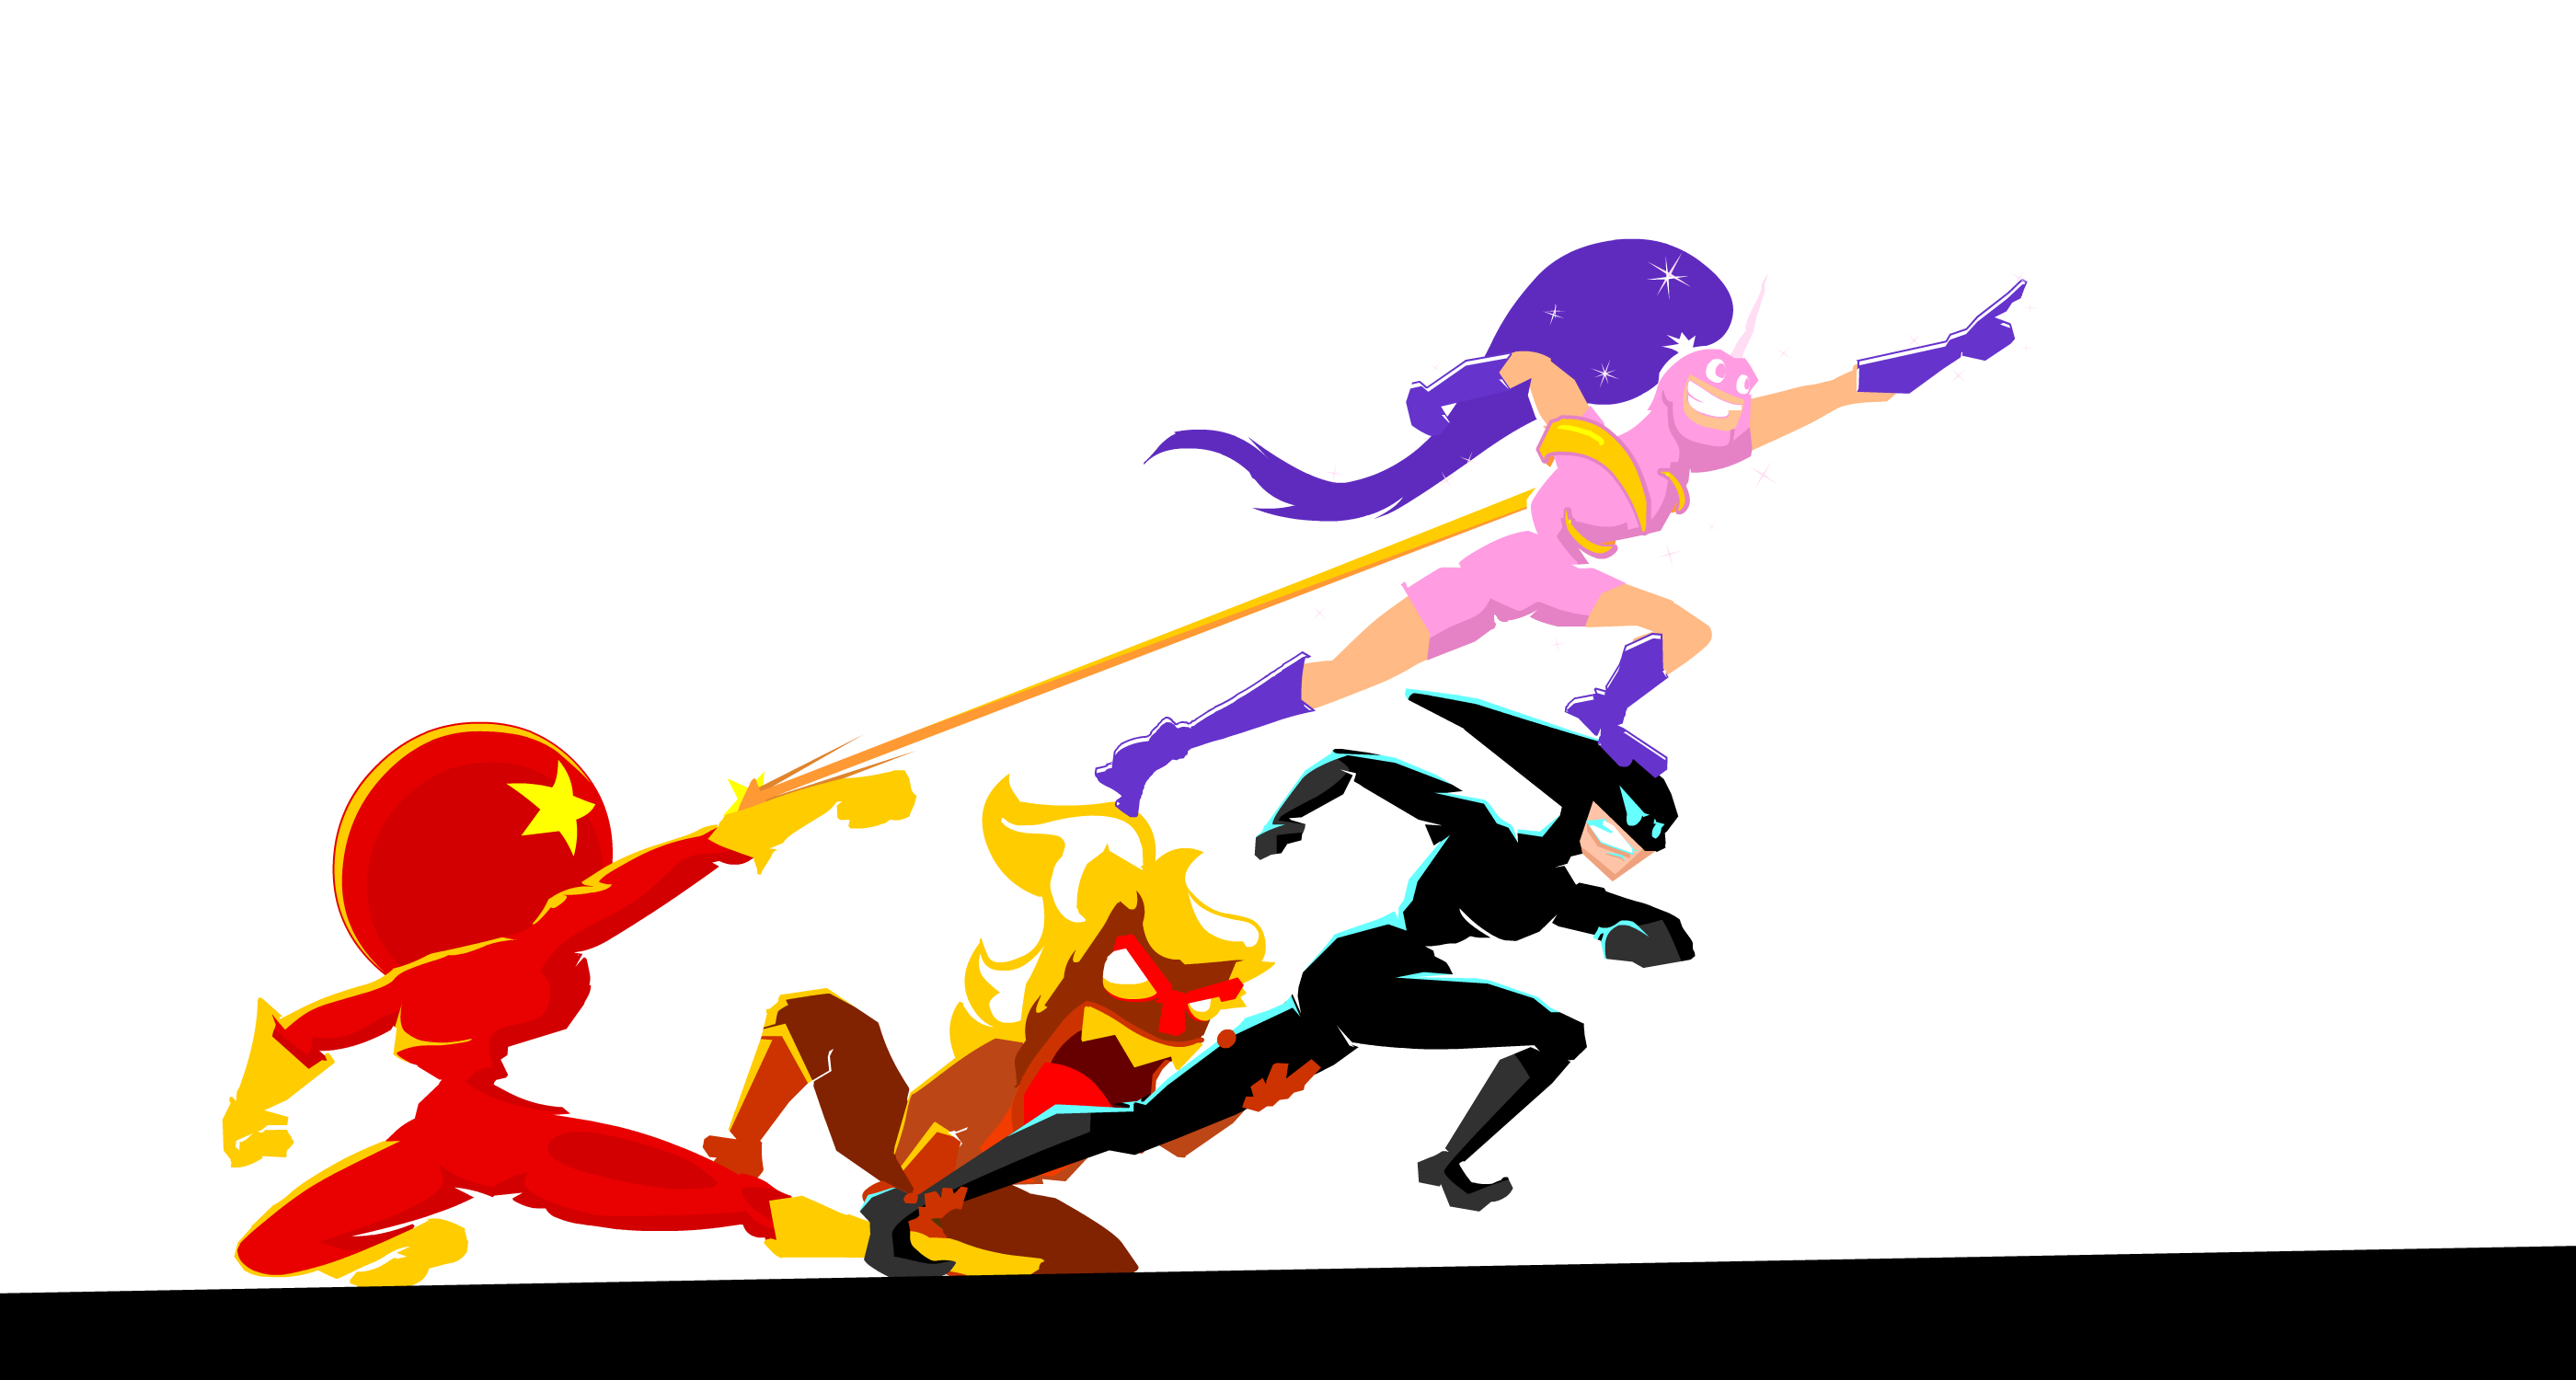 Speedrunners video game tinybuild. No time to explain logo png image transparent stock